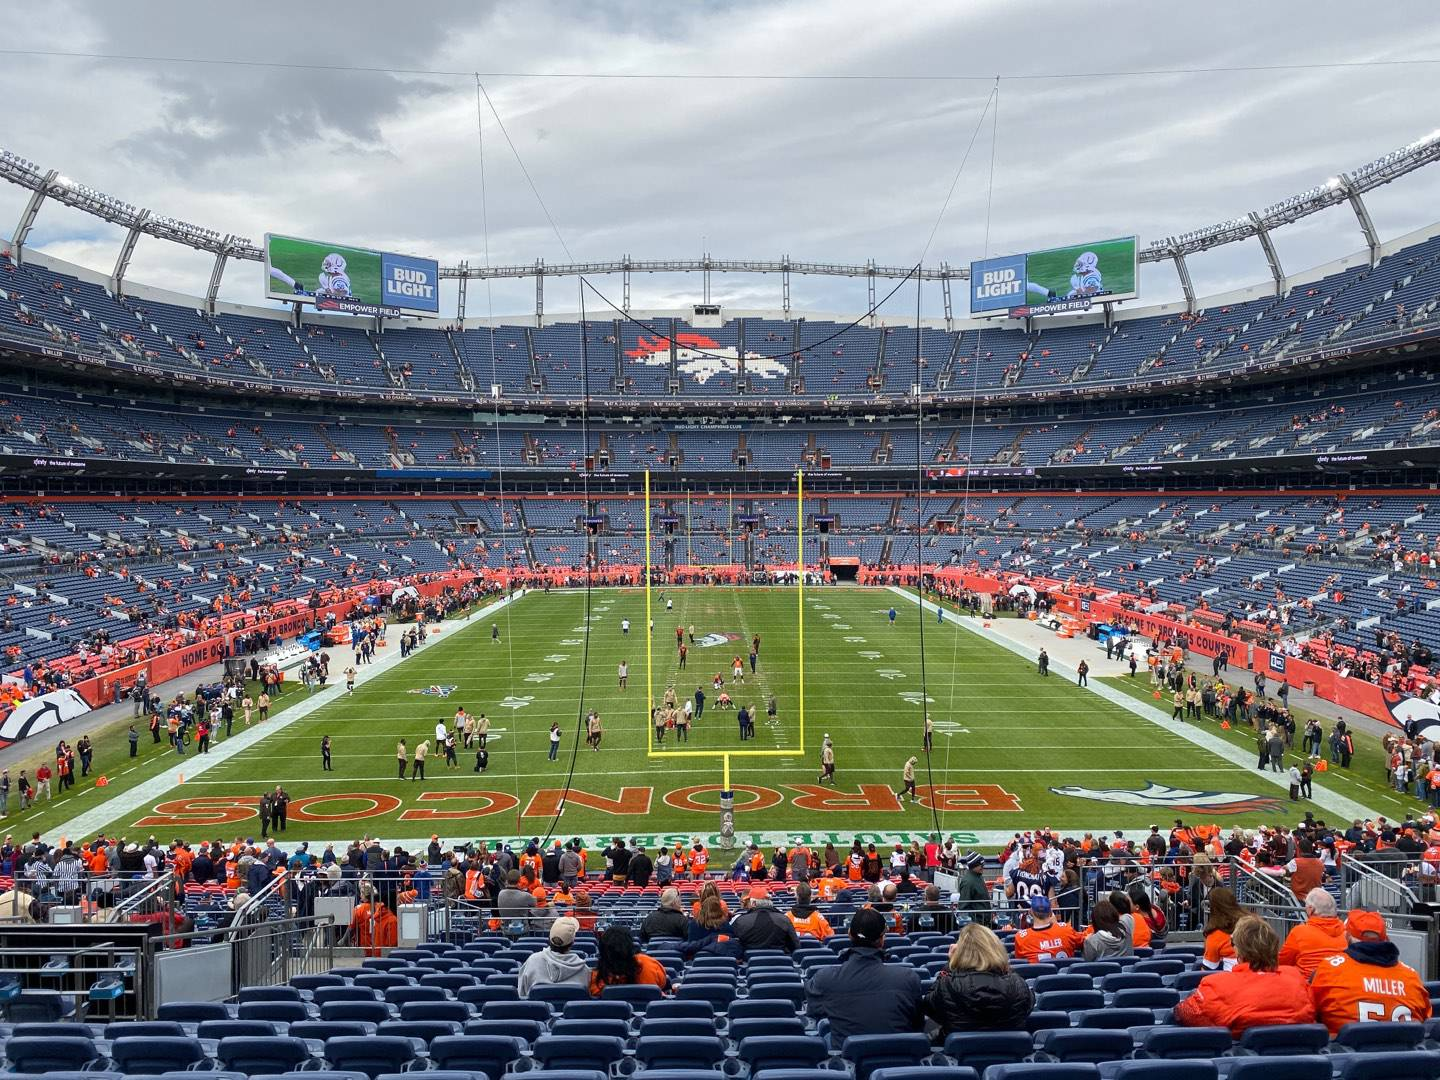 Empower Field at Mile High Stadium Section 132 Row 40 Seat 15